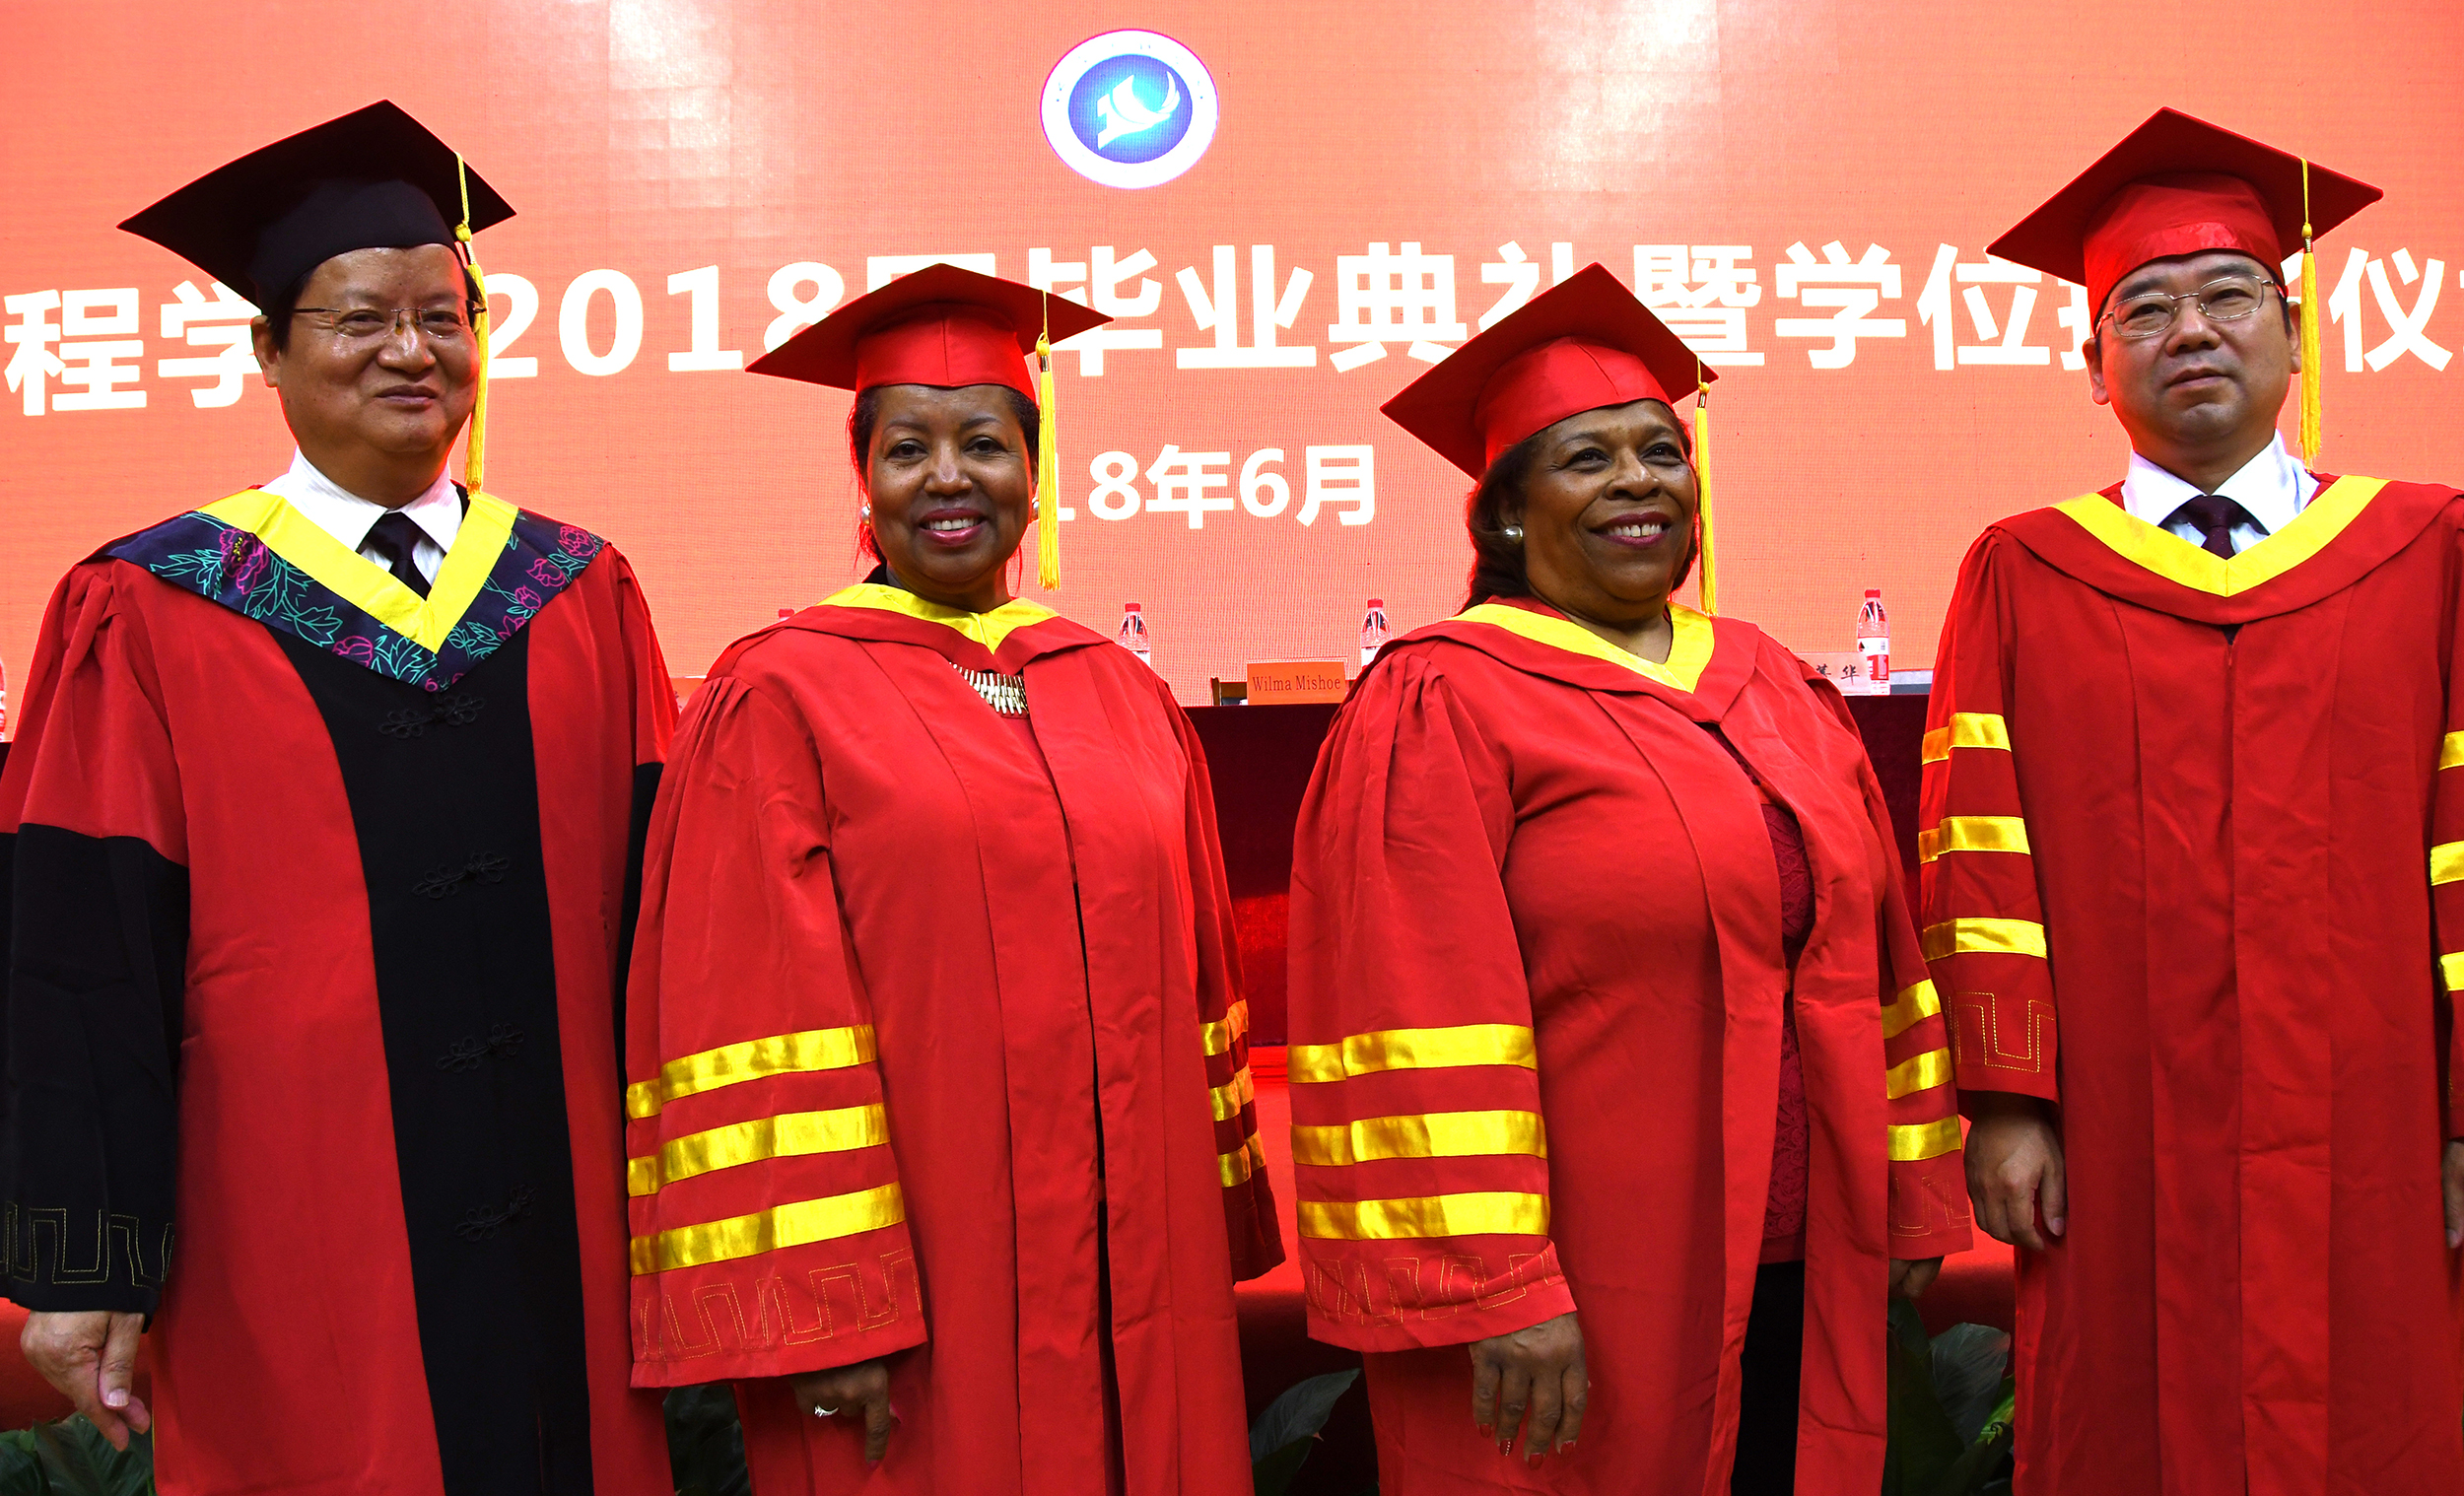 From left are Party Secretary Su Shigang, Dr. Devona Williams, President Wilma Mishoe and NBUT President Lyn Zhongda.